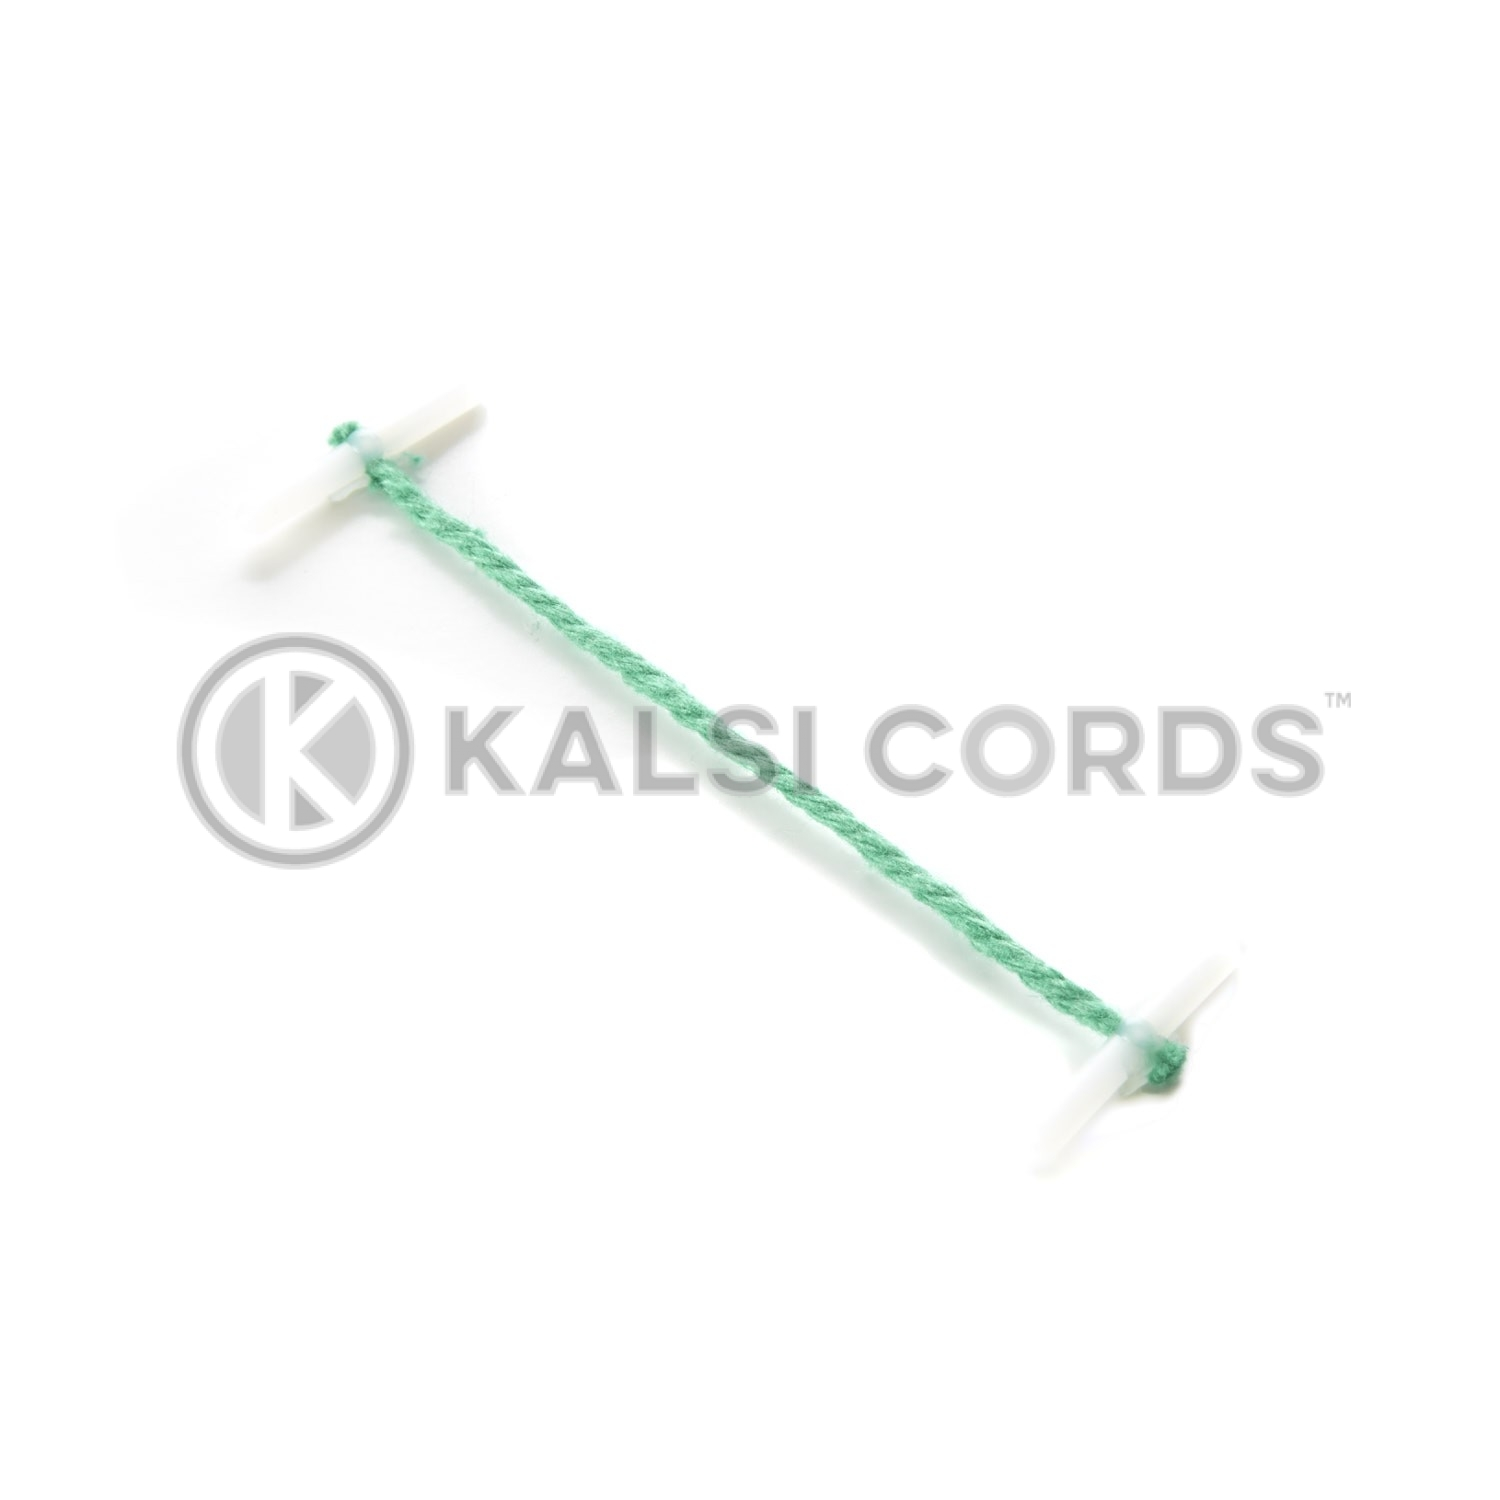 3 Inch 76mm Green Plastic Treasury Tags Cotton T Bar Paper Fasteners Bind Paper Documents Alternative Paper Clips Staples Secure Hold Together Kalsi Cords